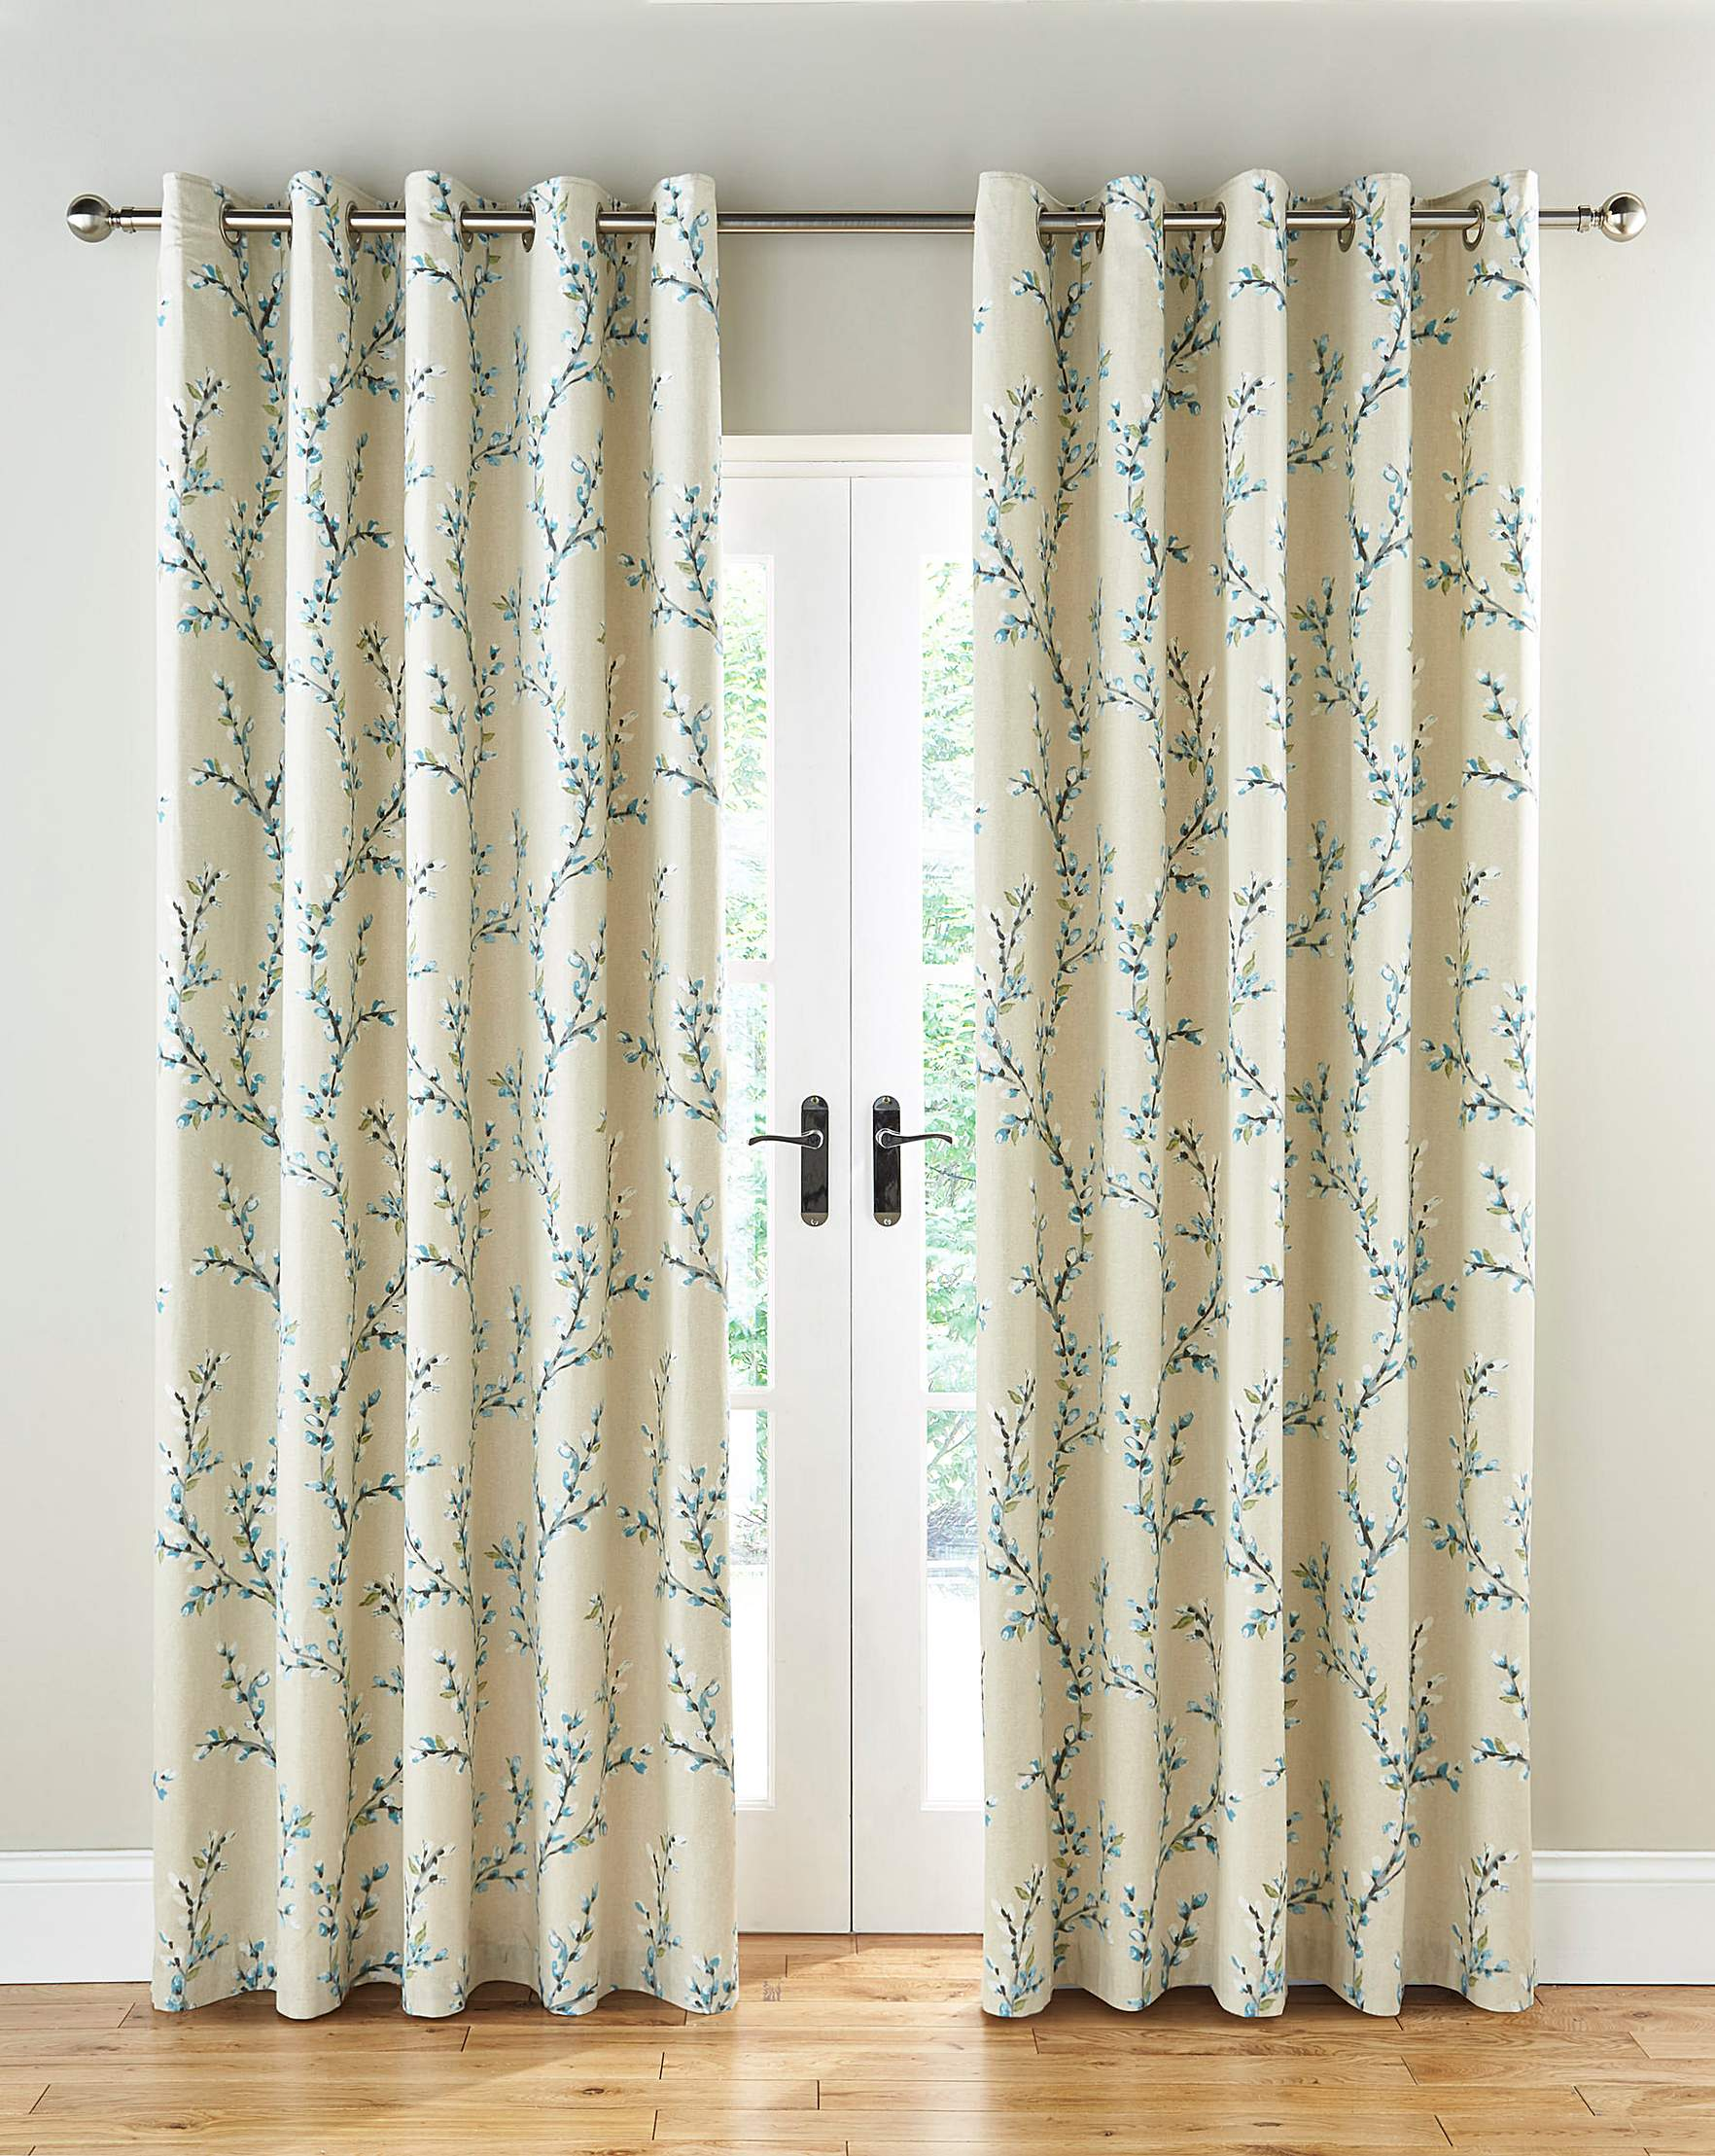 ready and eylet duck striped curtains green lined by in made monaco ring product charcoal egg eyelet top sundour